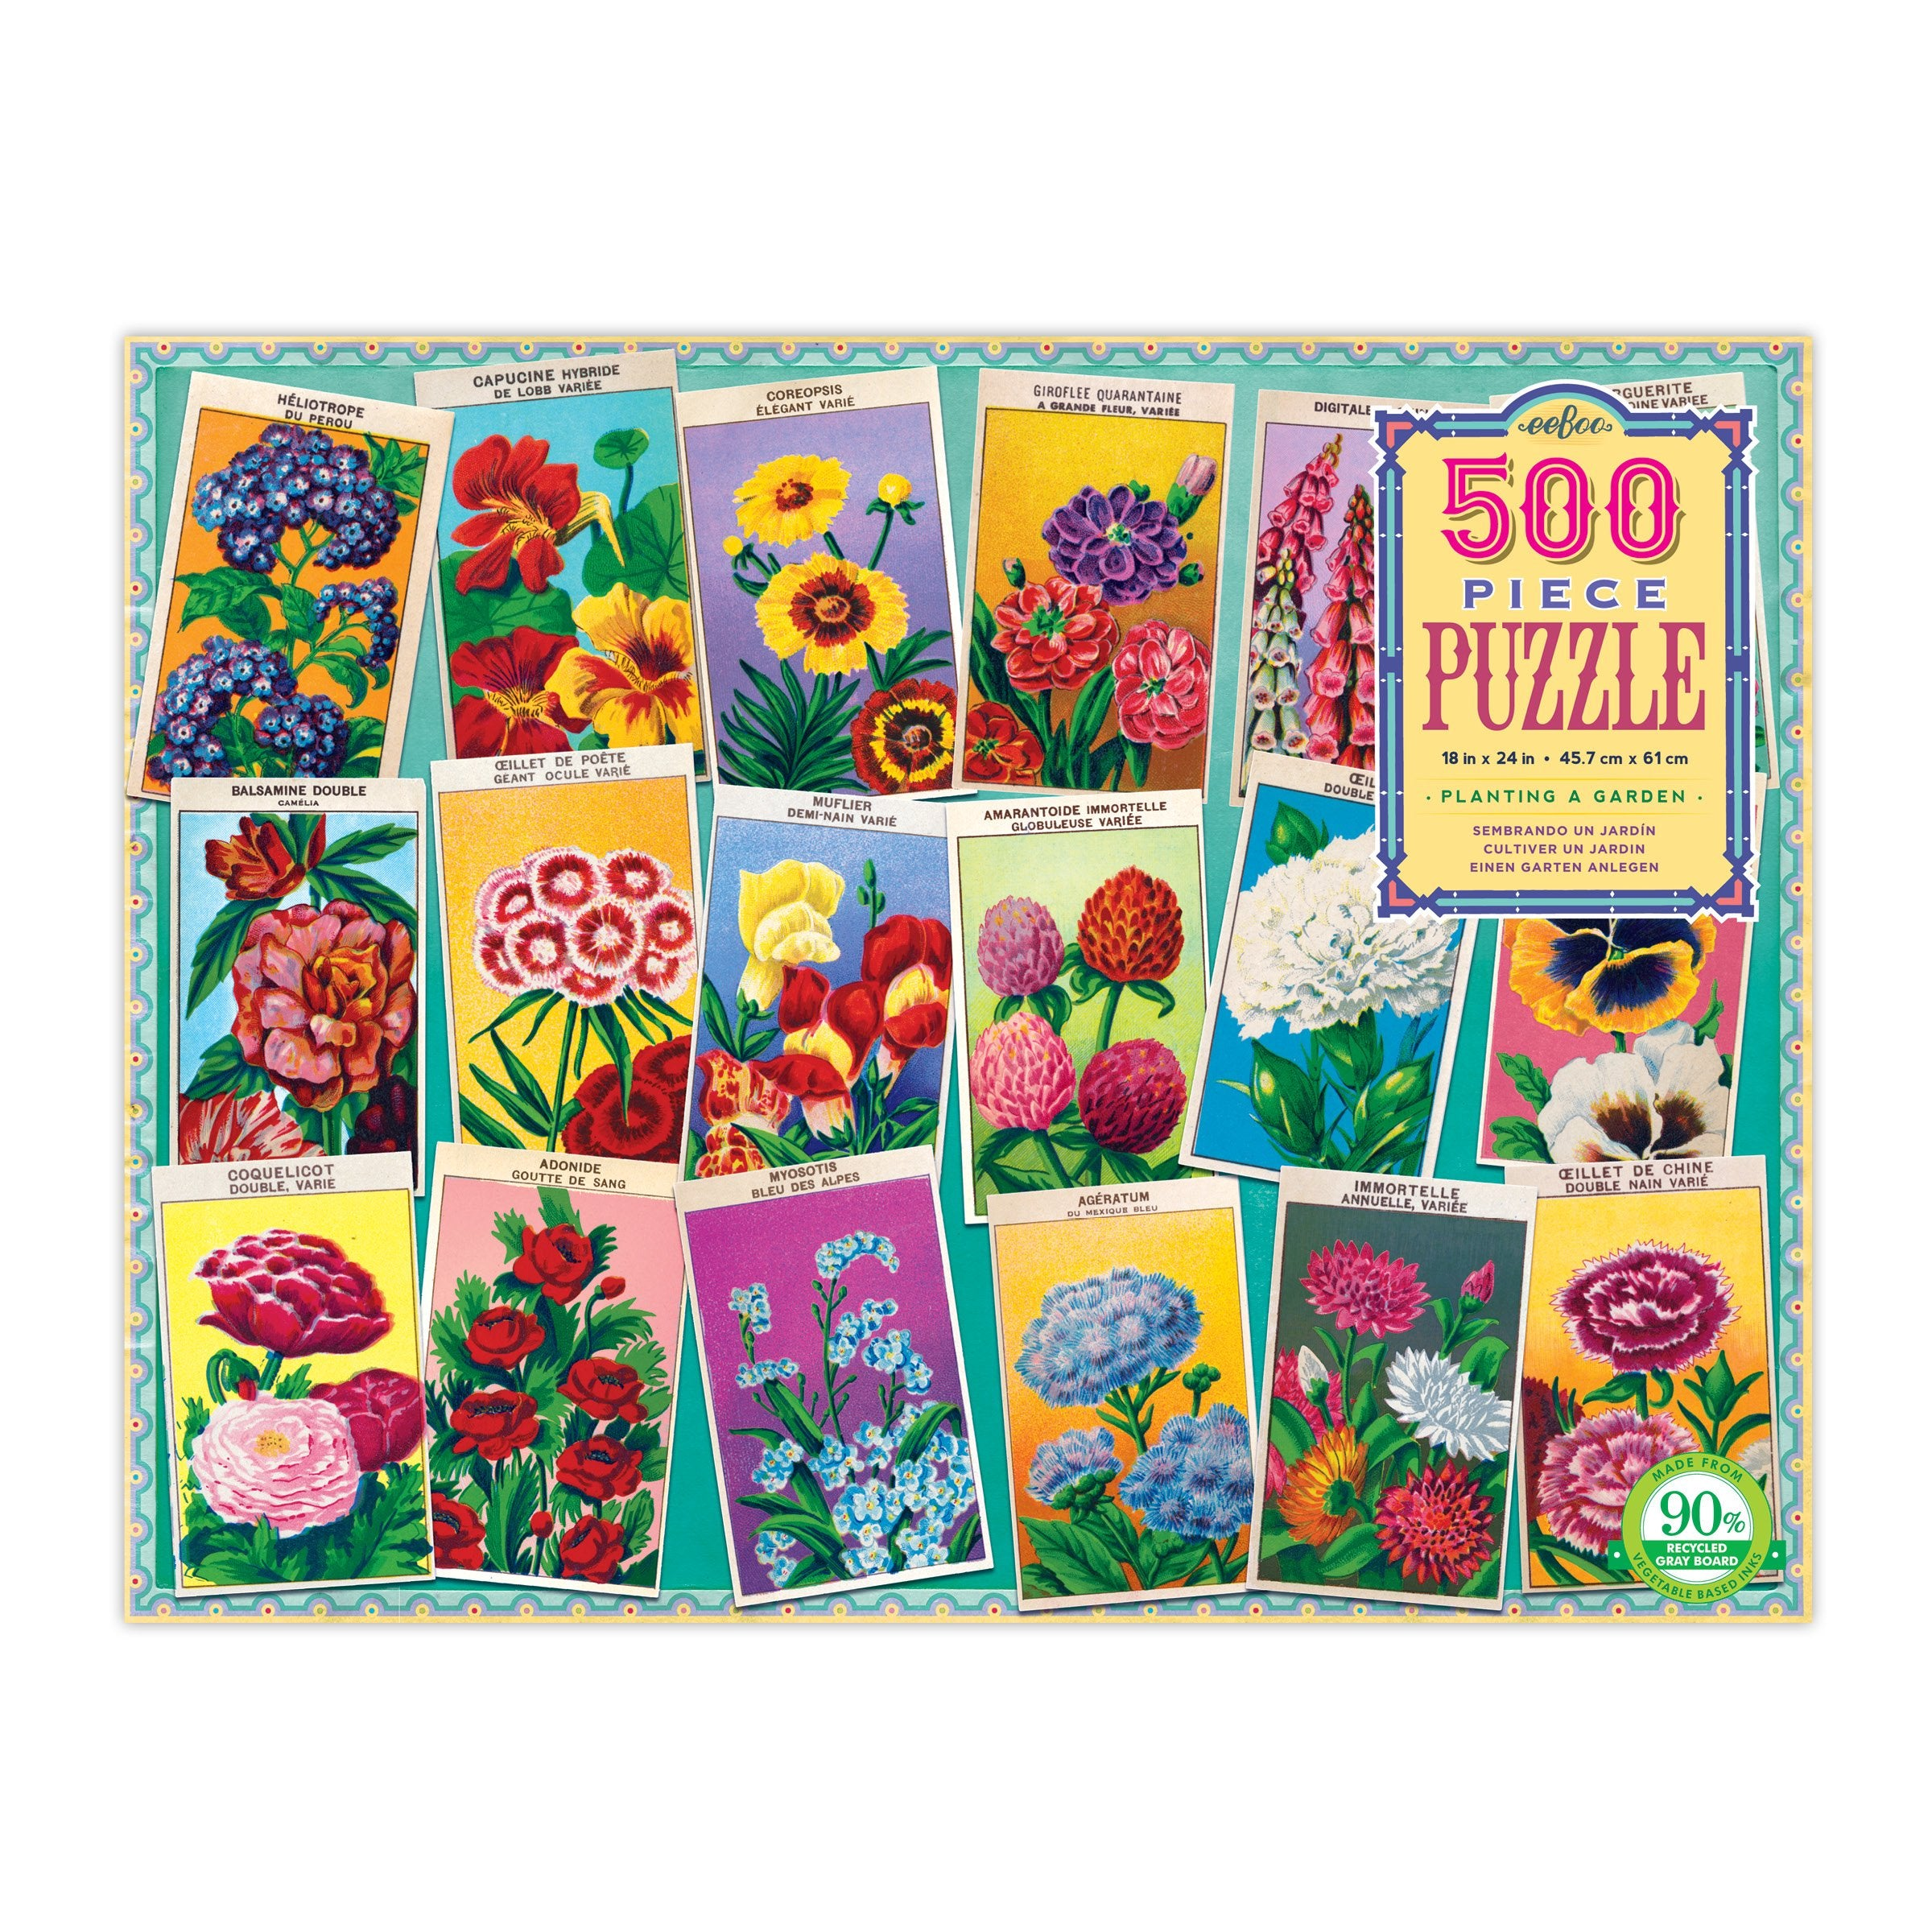 French Seed Packet Puzzle